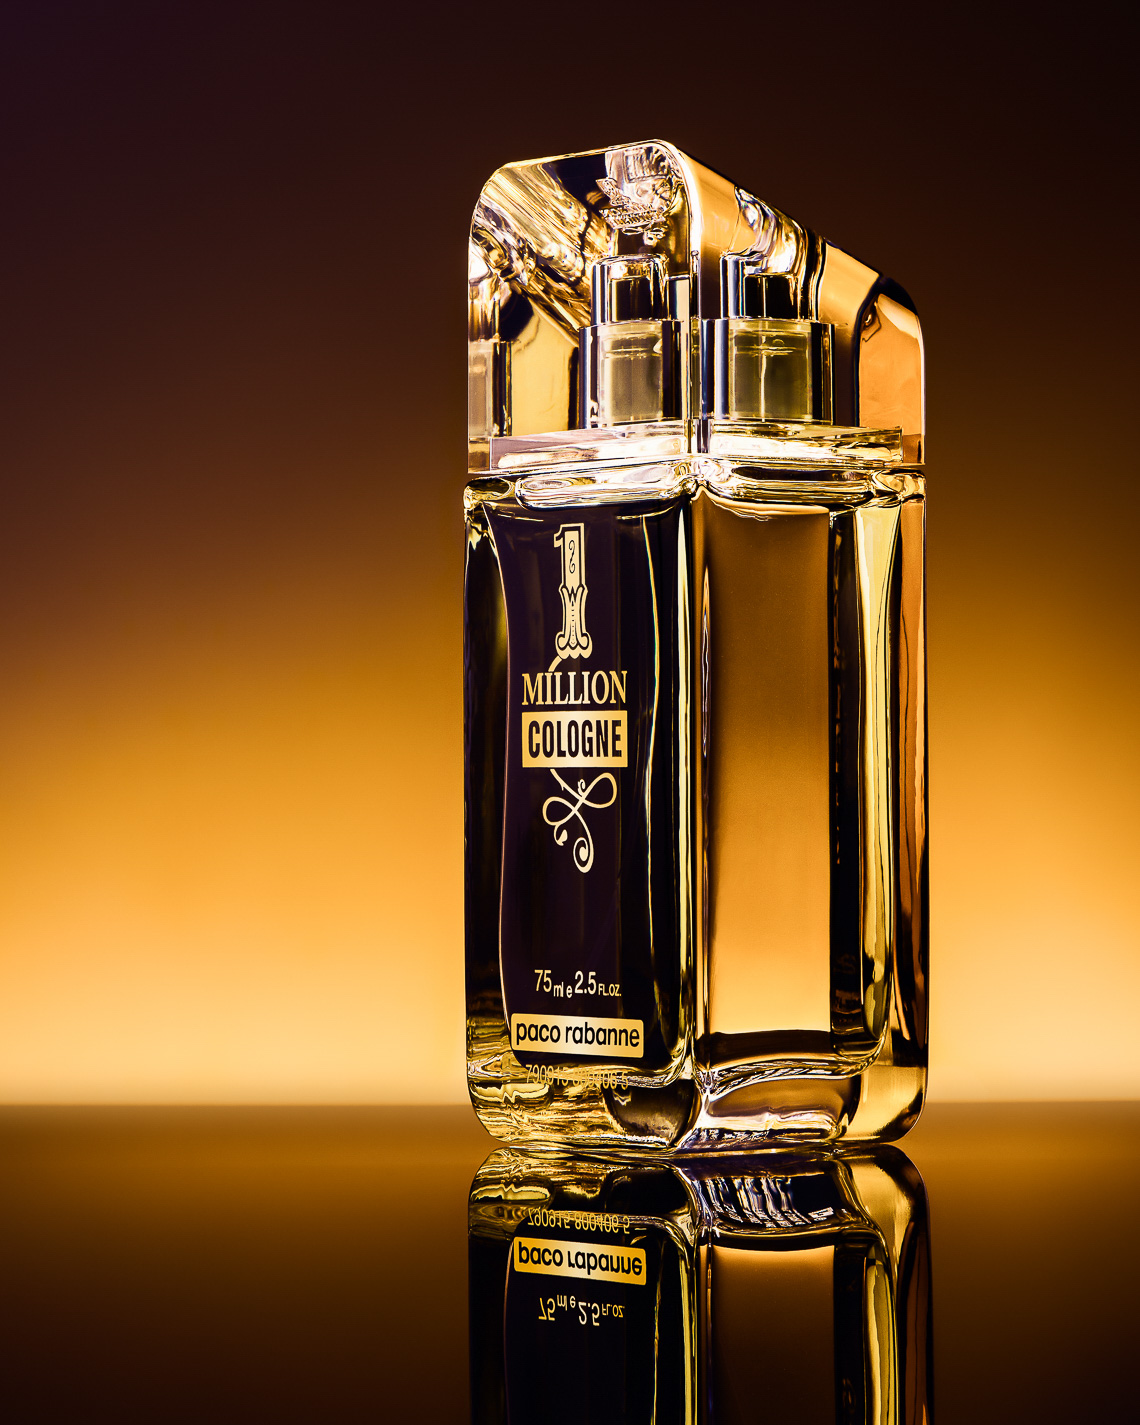 Fragrance 1 Million Cologne - Christophe Benard Photography - Edmonton Commercial Photographer, Edmonton Commercial Photography, Edmonton Product Photographer, Edmonton Product Photography, Still Life Photographer in Canada, Product Photographer in Canada